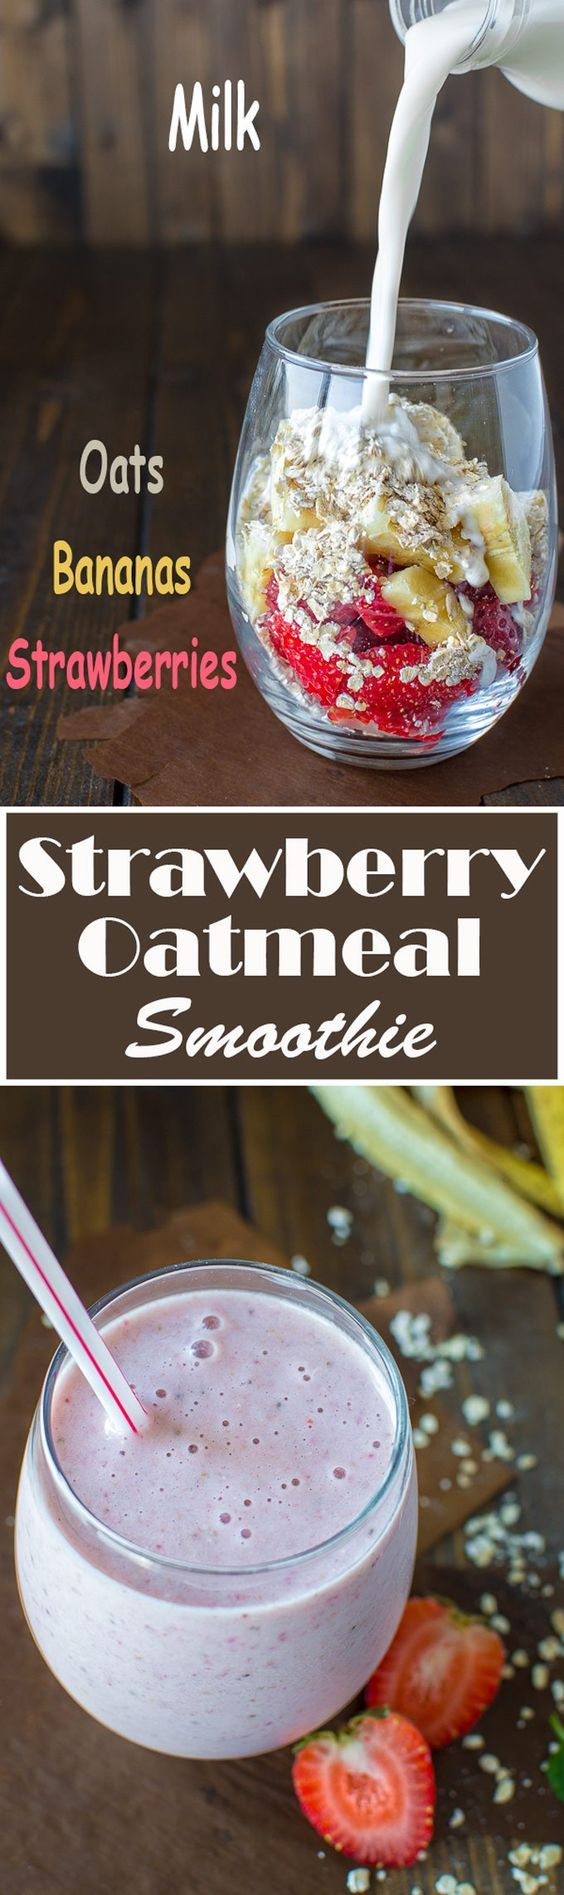 This creamy Strawberry and Oatmeal Smoothie makes the perfect breakfast. It is low on calories, yet so filling and tasty!